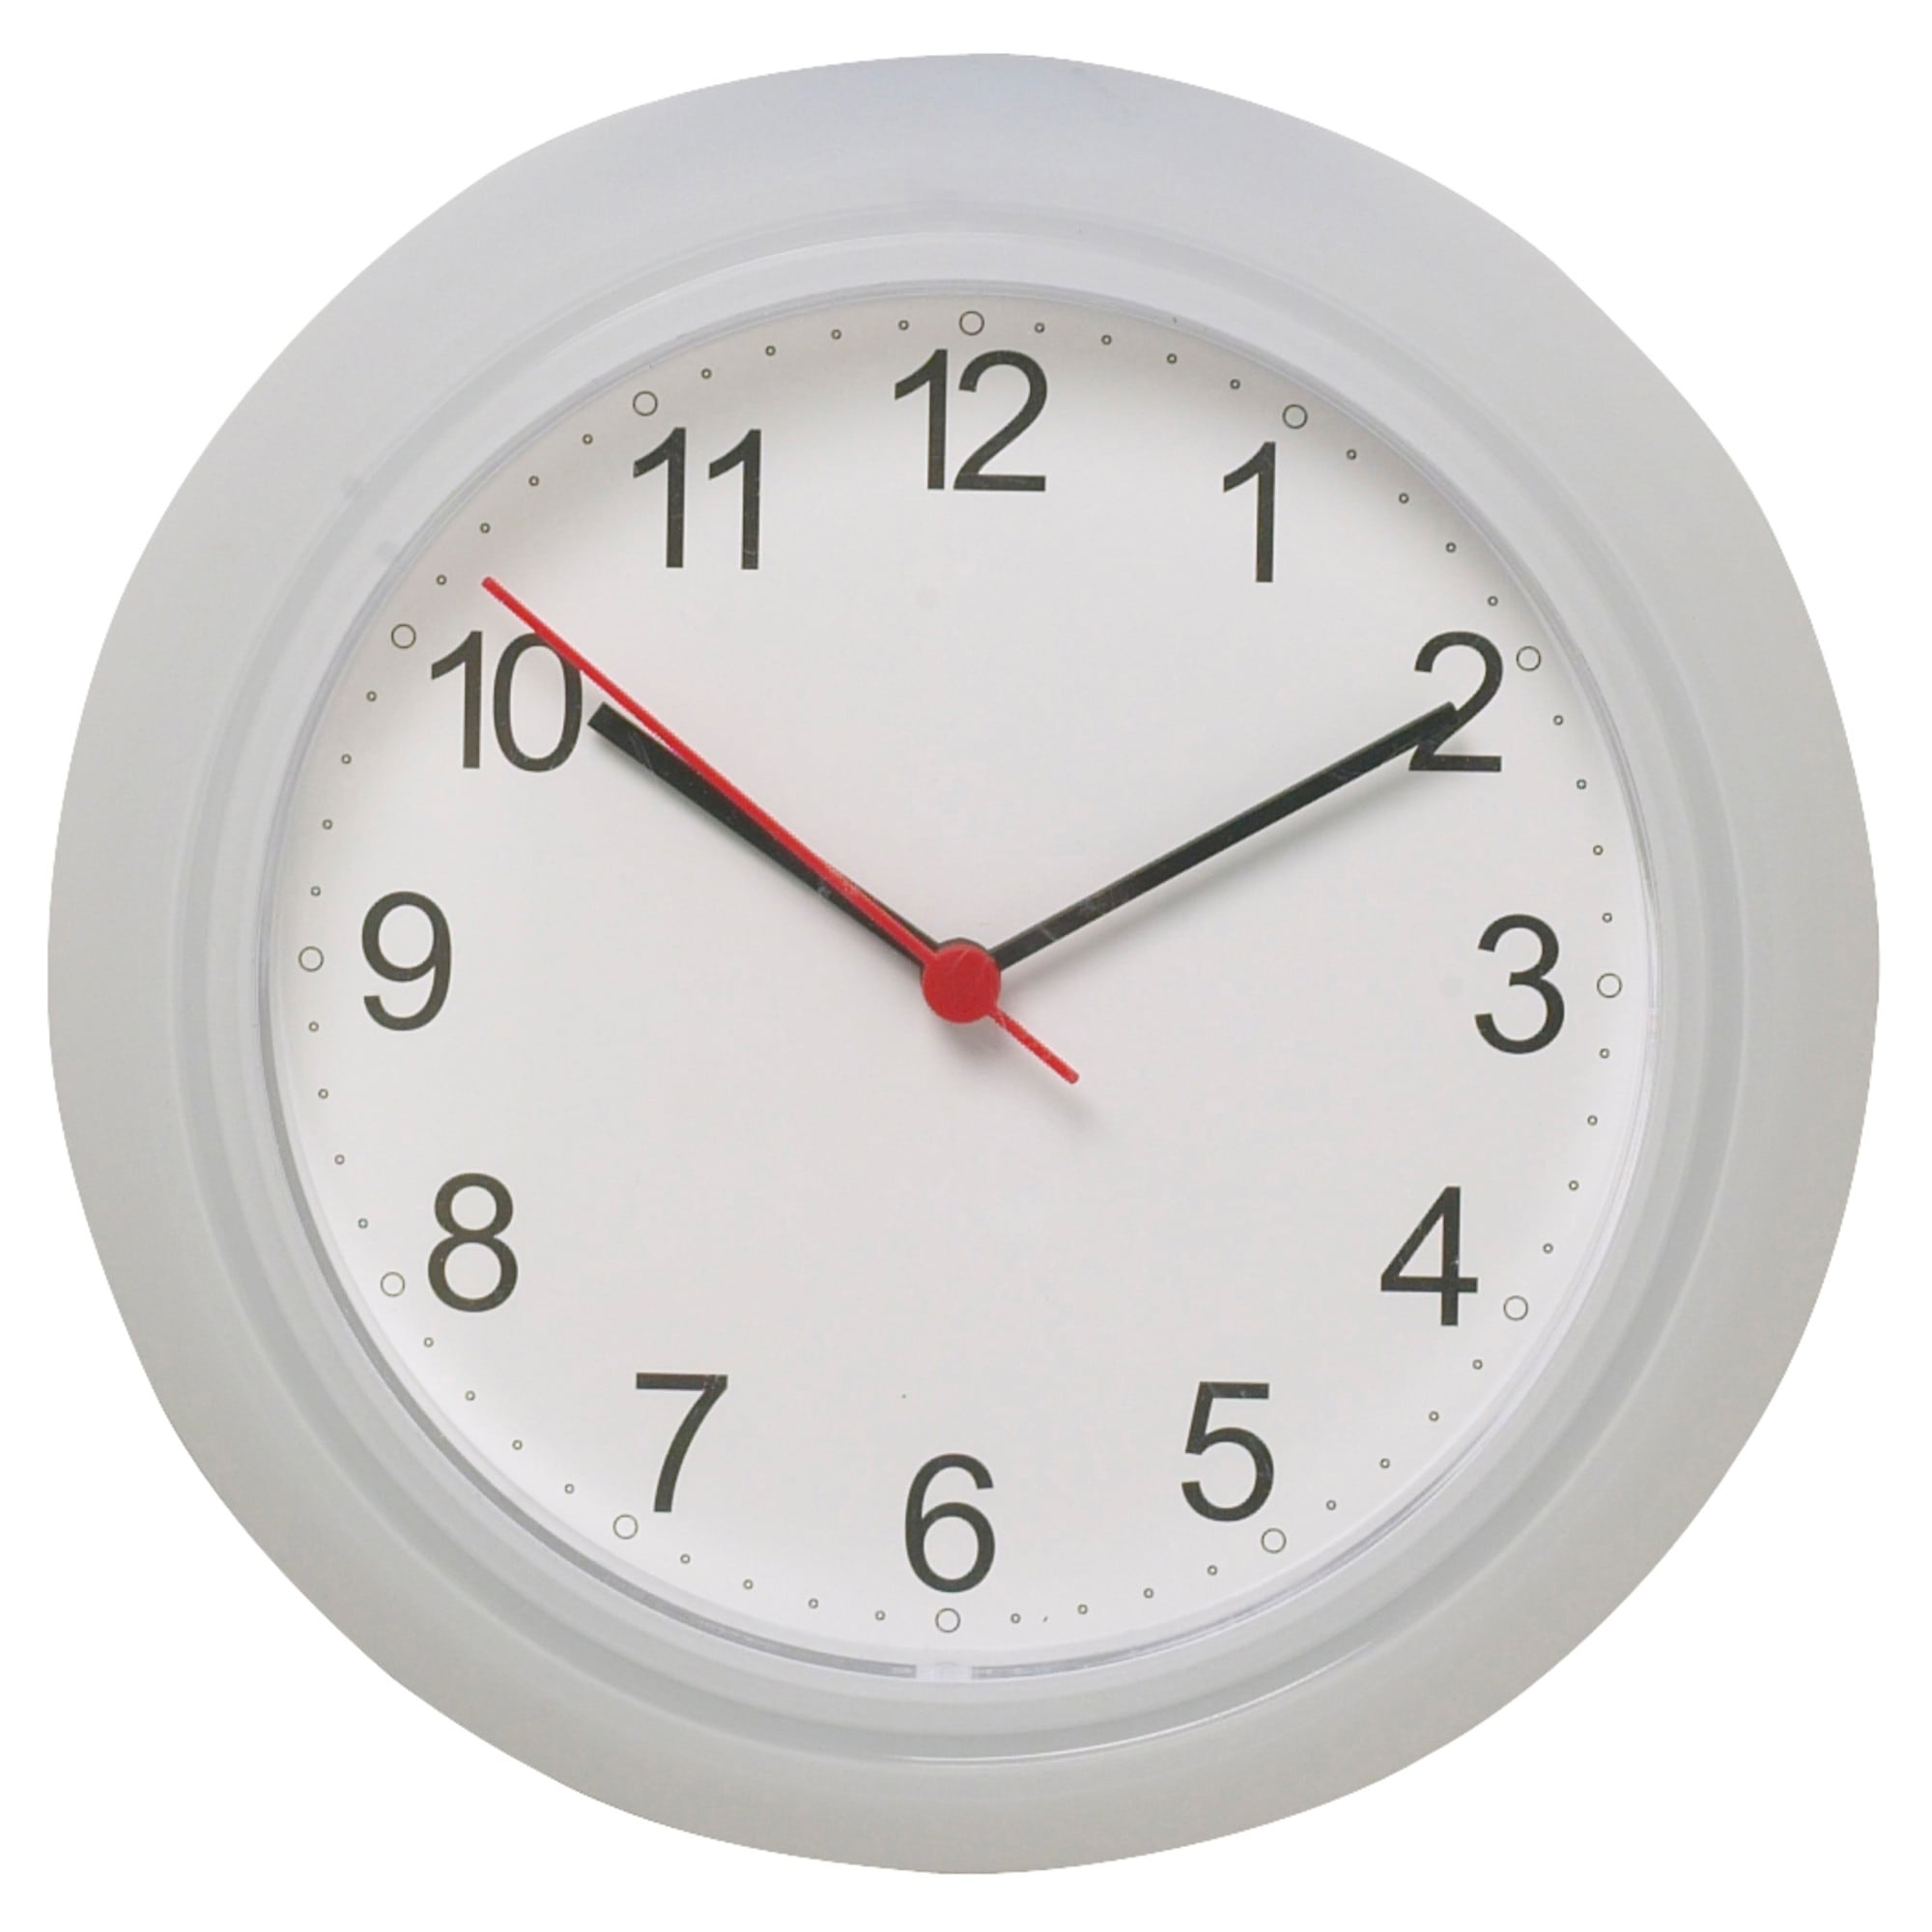 Rusch wall clock ikea amipublicfo Choice Image